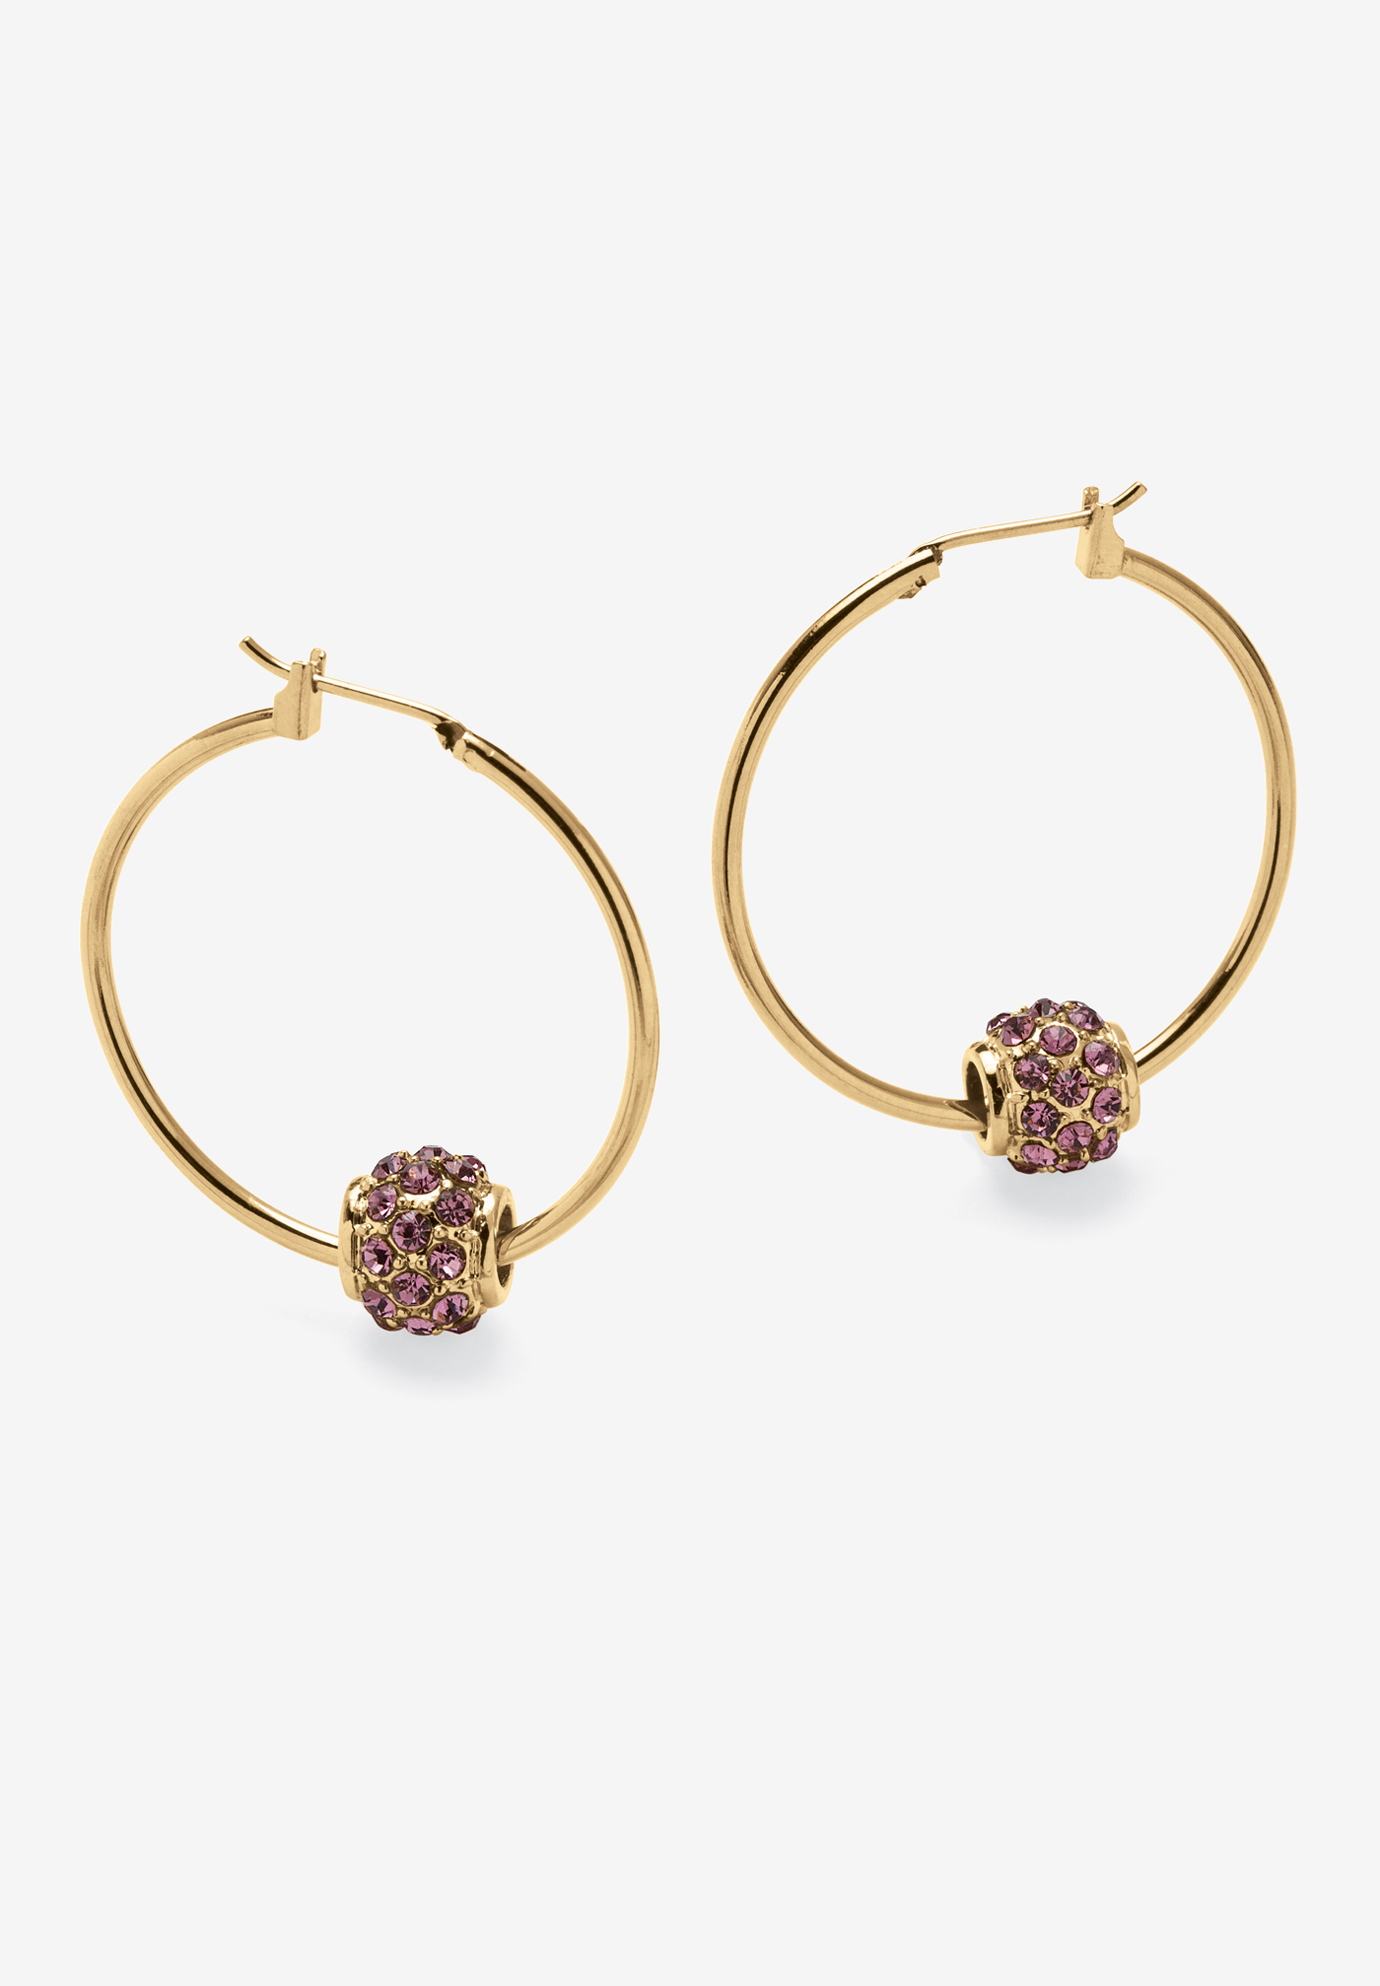 Goldtone Charm Hoop Earrings (32mm) Round Simulated Birthstone,